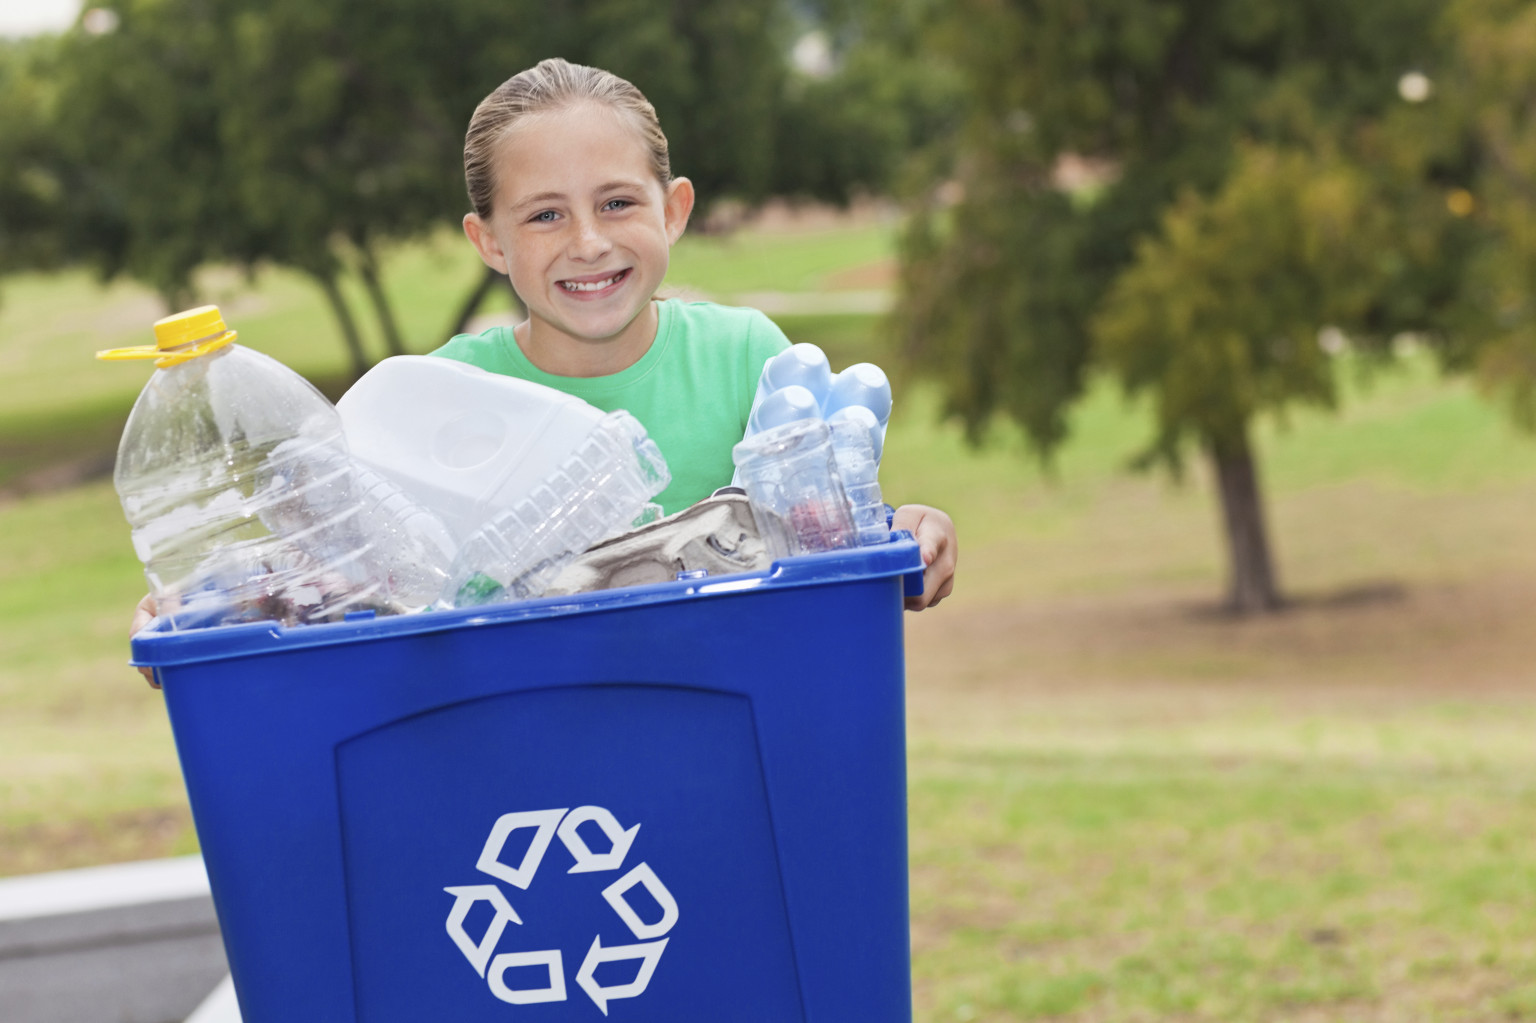 recycling essays for kids 91 121 113 106 recycling essay winner of youth award ljworld com